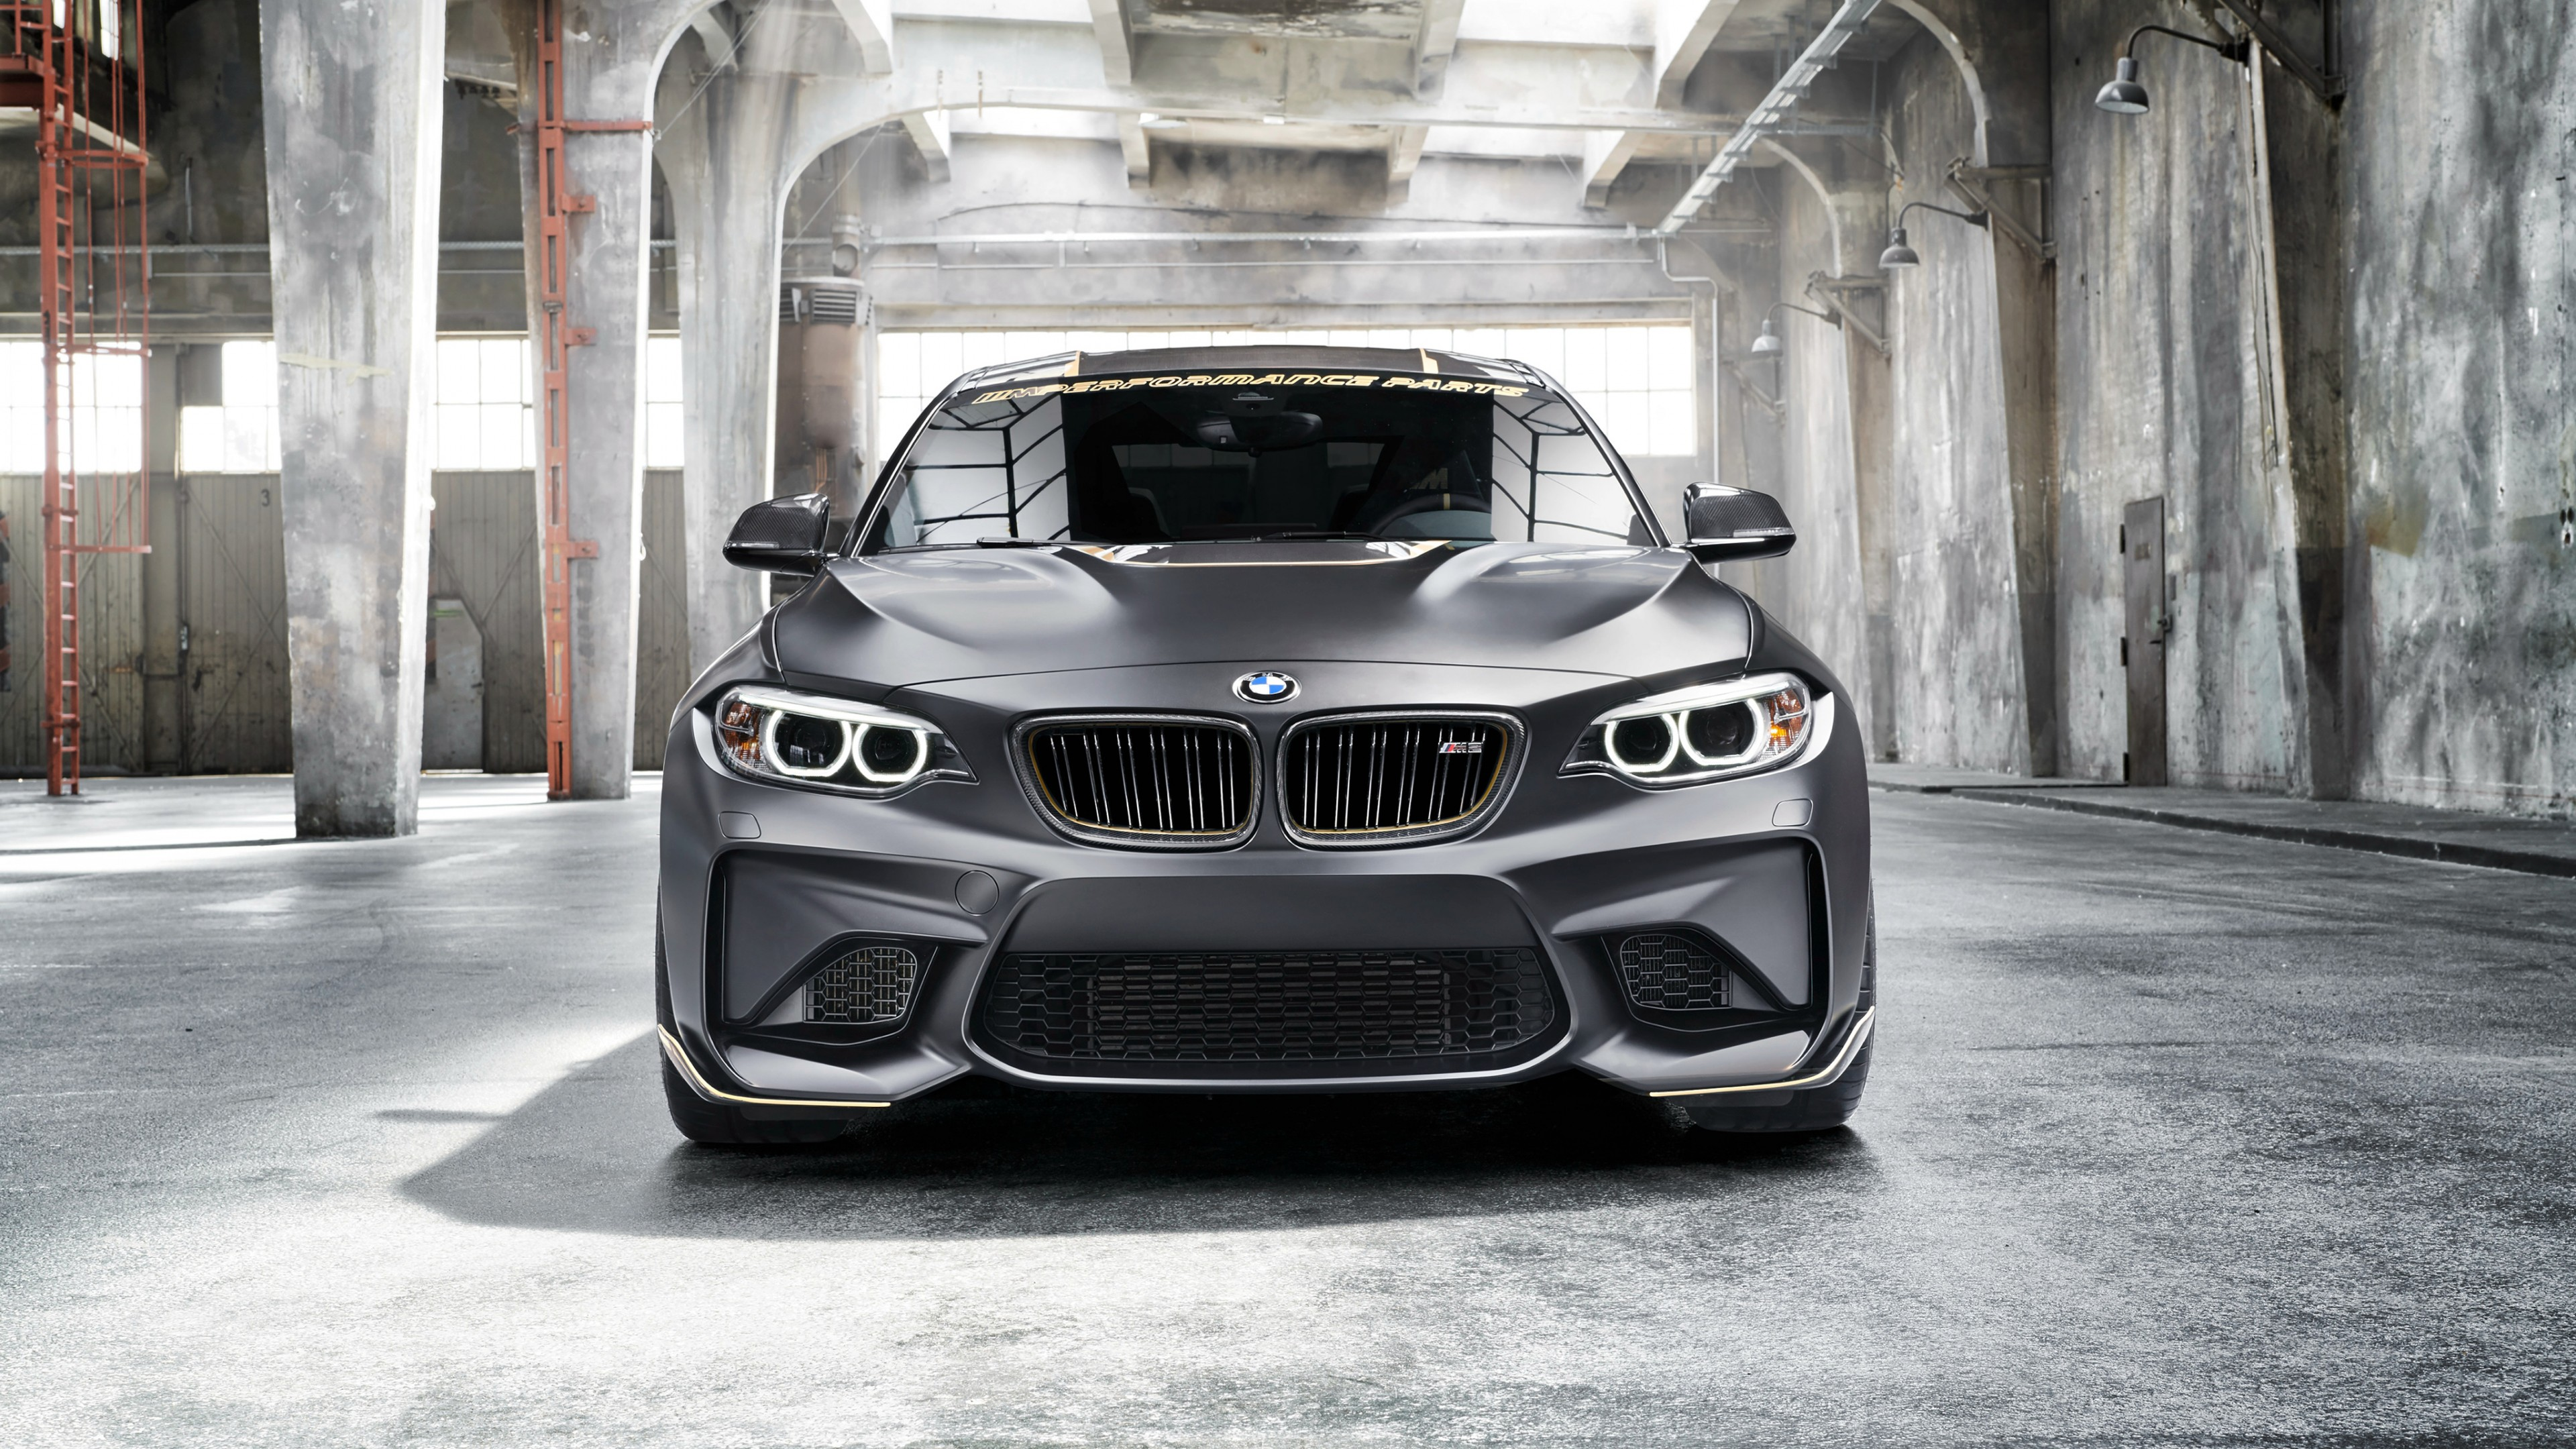 BMW M2 M Performance Parts Concept Photo 4k 3840x2160